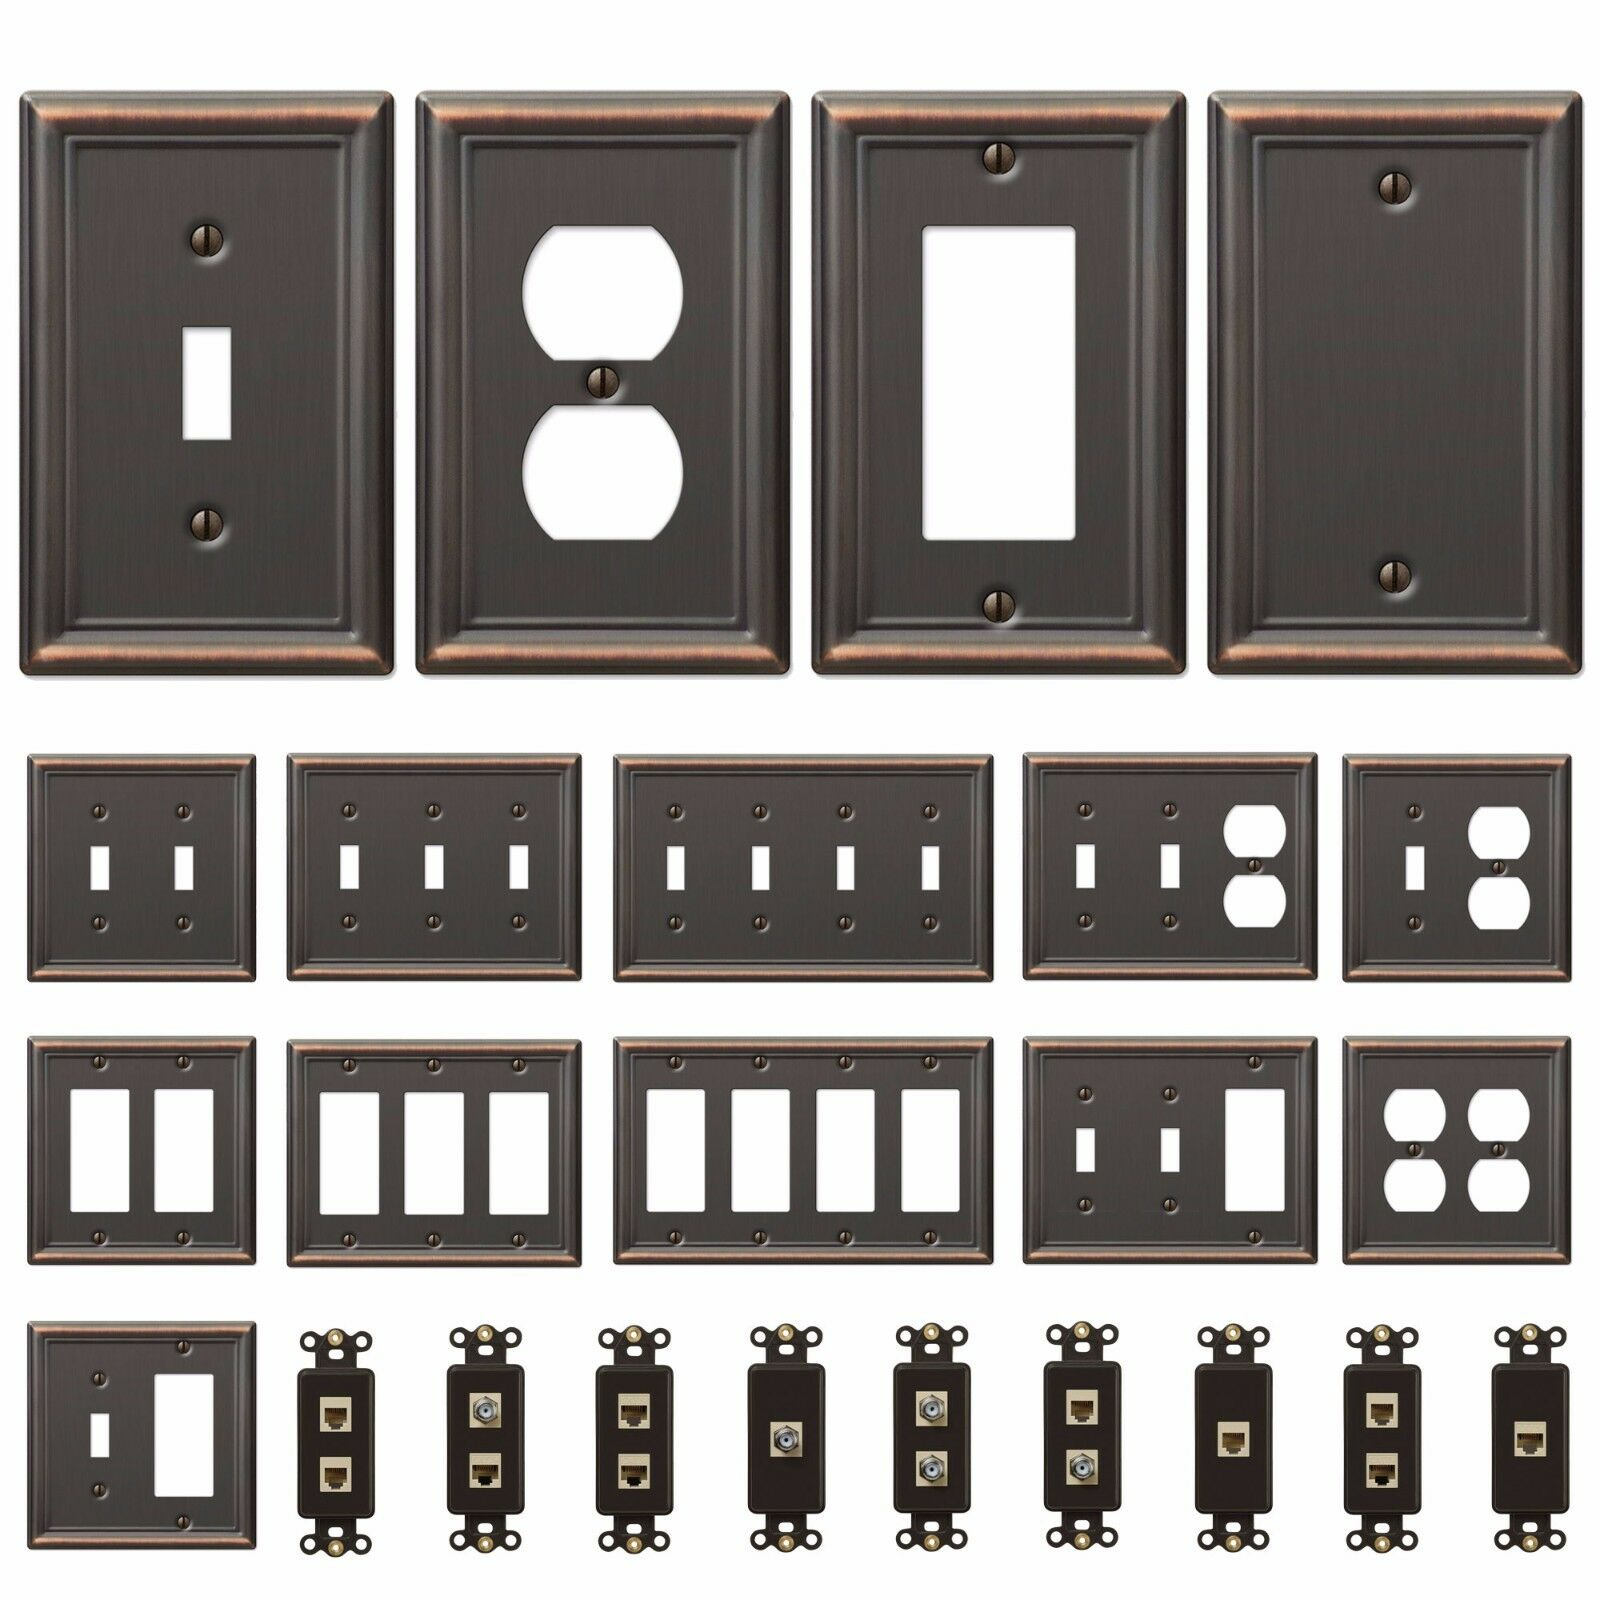 Bronze Wall Switch Plate Toggle Outlet Cover Rocker Duplex Wallplate Covers Electrical Outlets, Switches & Accessories